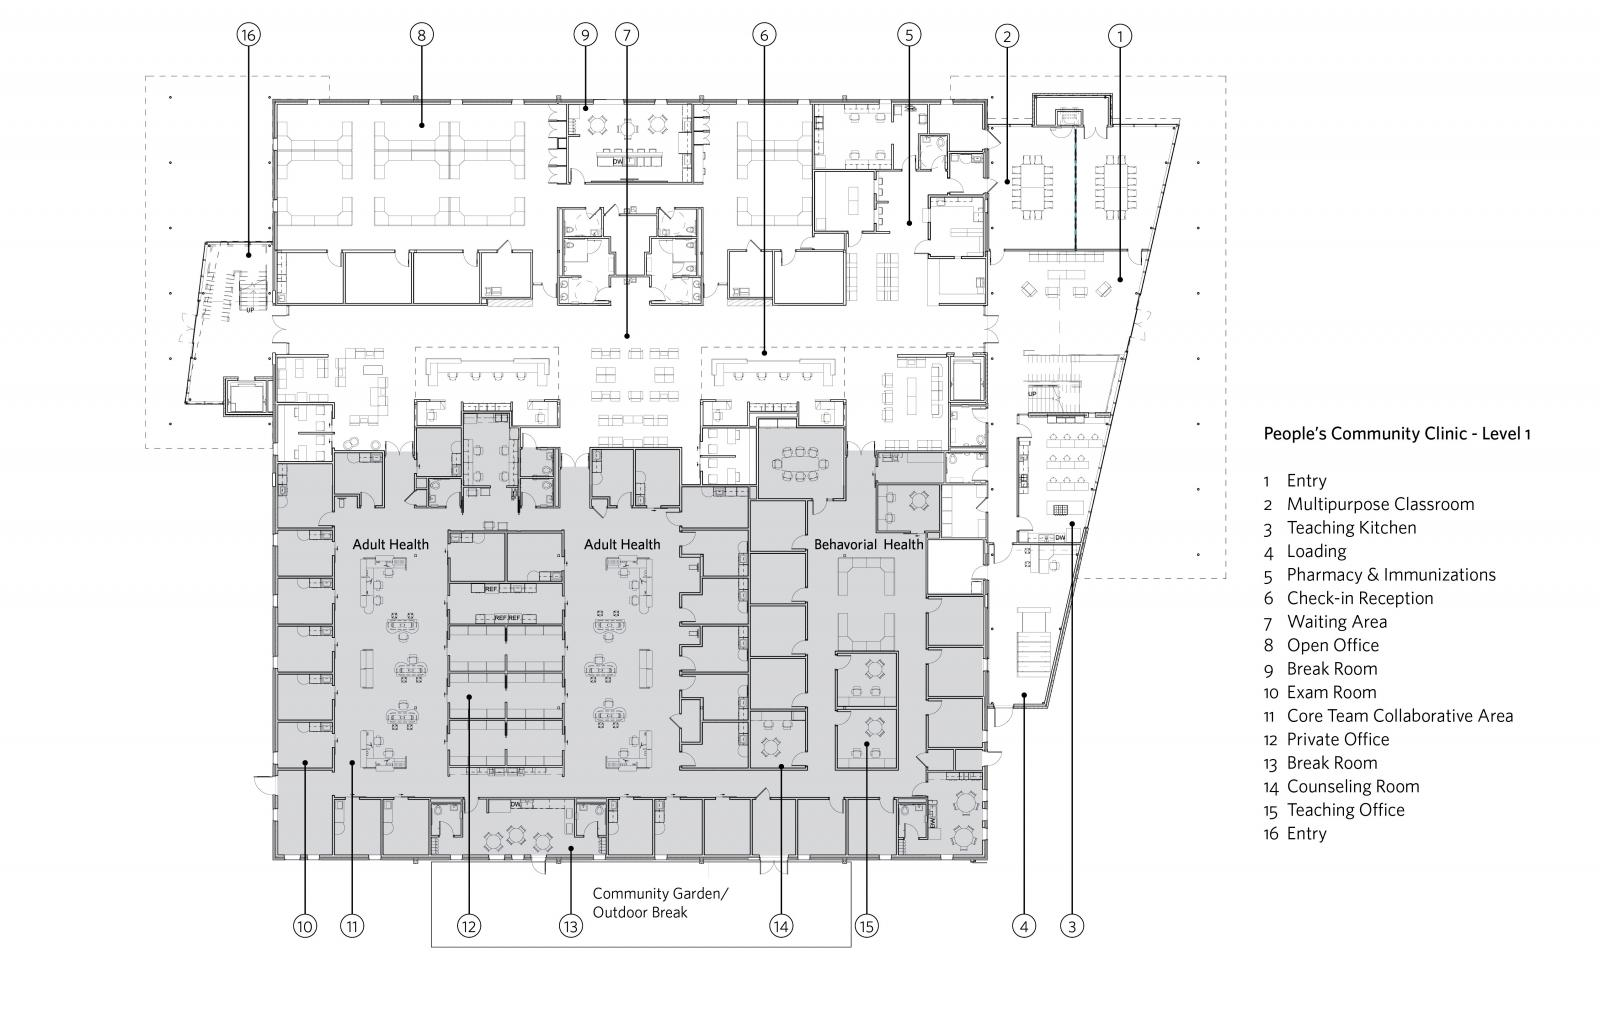 Teaching Kitchen Floor Plan excellence in design awards | winners